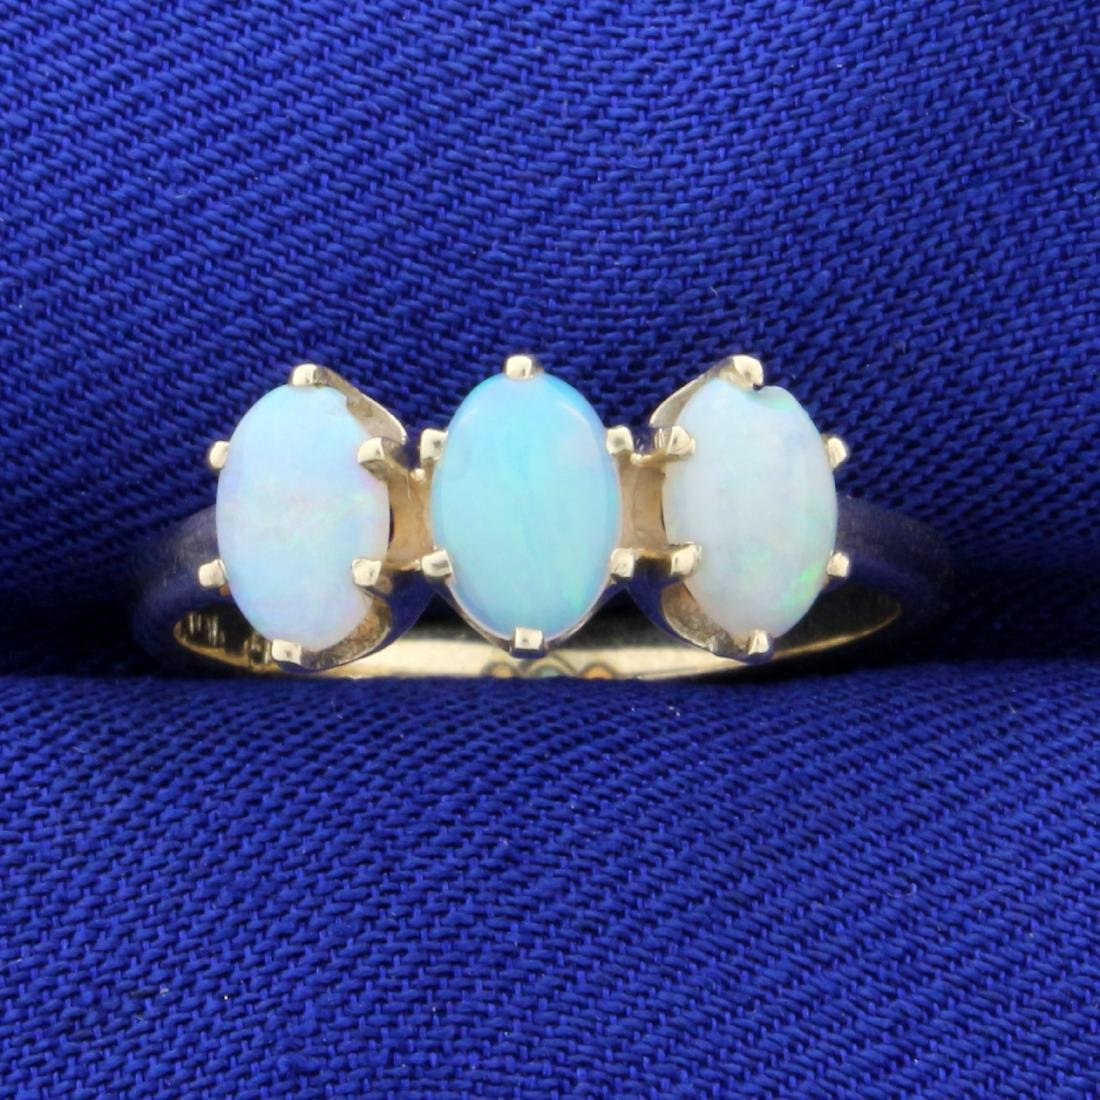 1.5ct TW Opal Ring in 10K Yellow Gold